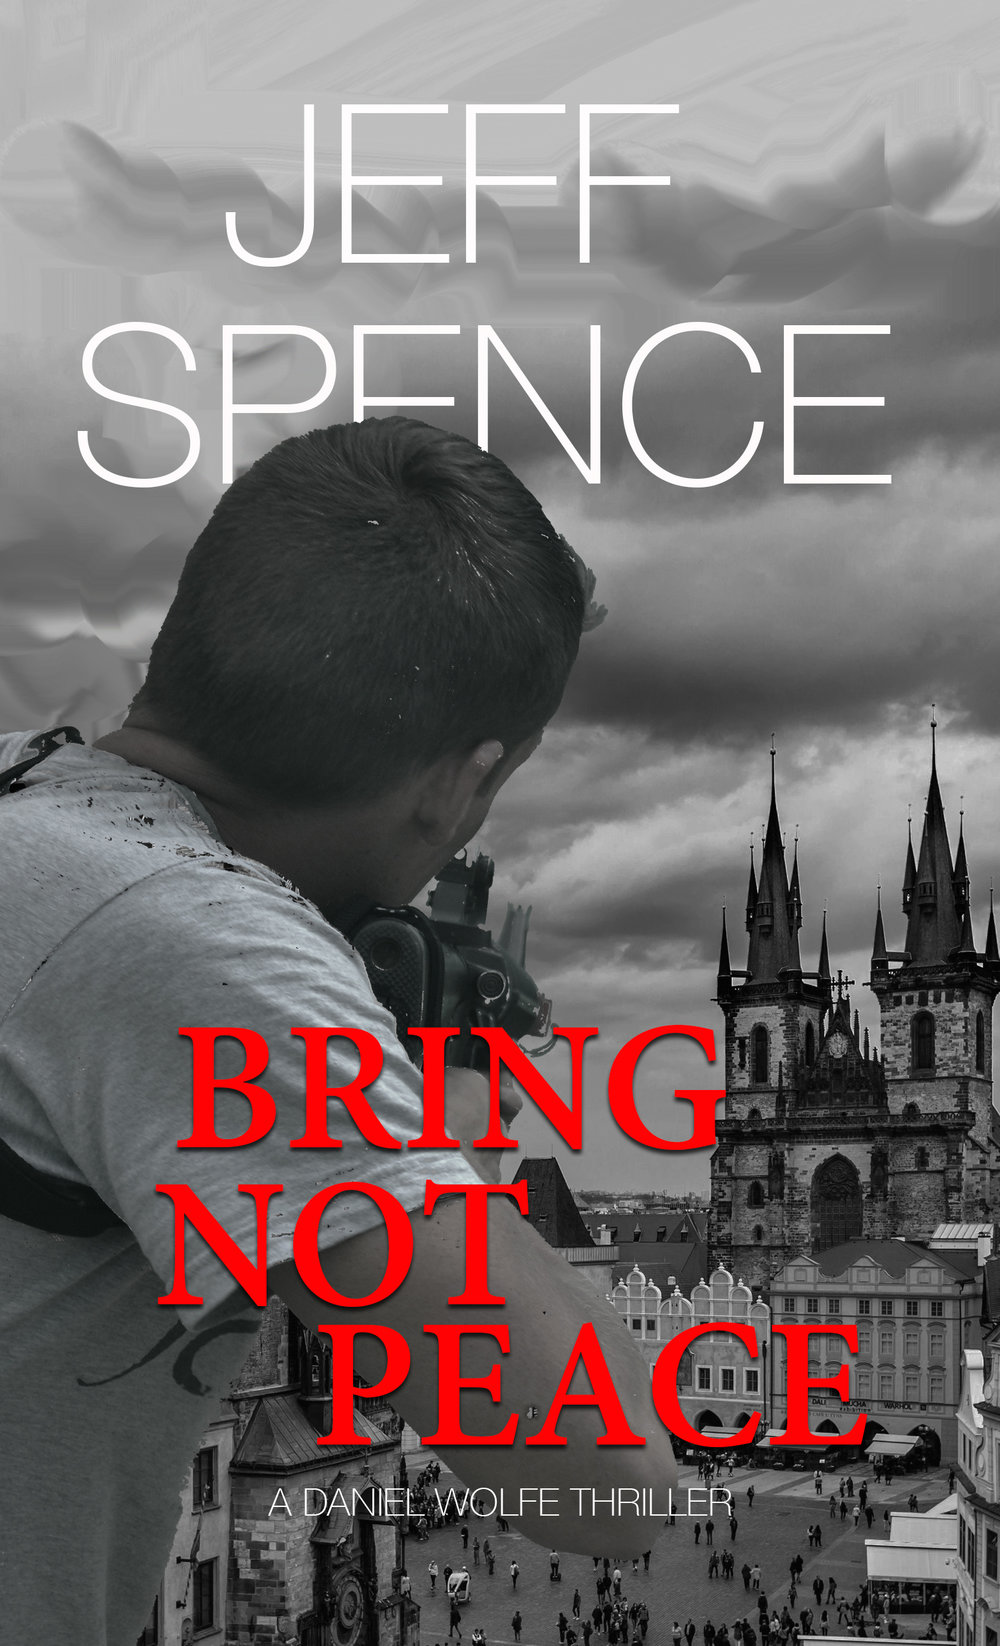 Book Three  Set in Prague and London  Wolfe gains his stride as a covert agent, armed and authorized to bring targets to justice - by whatever means necessary.  Warning: Violence and mature themes.